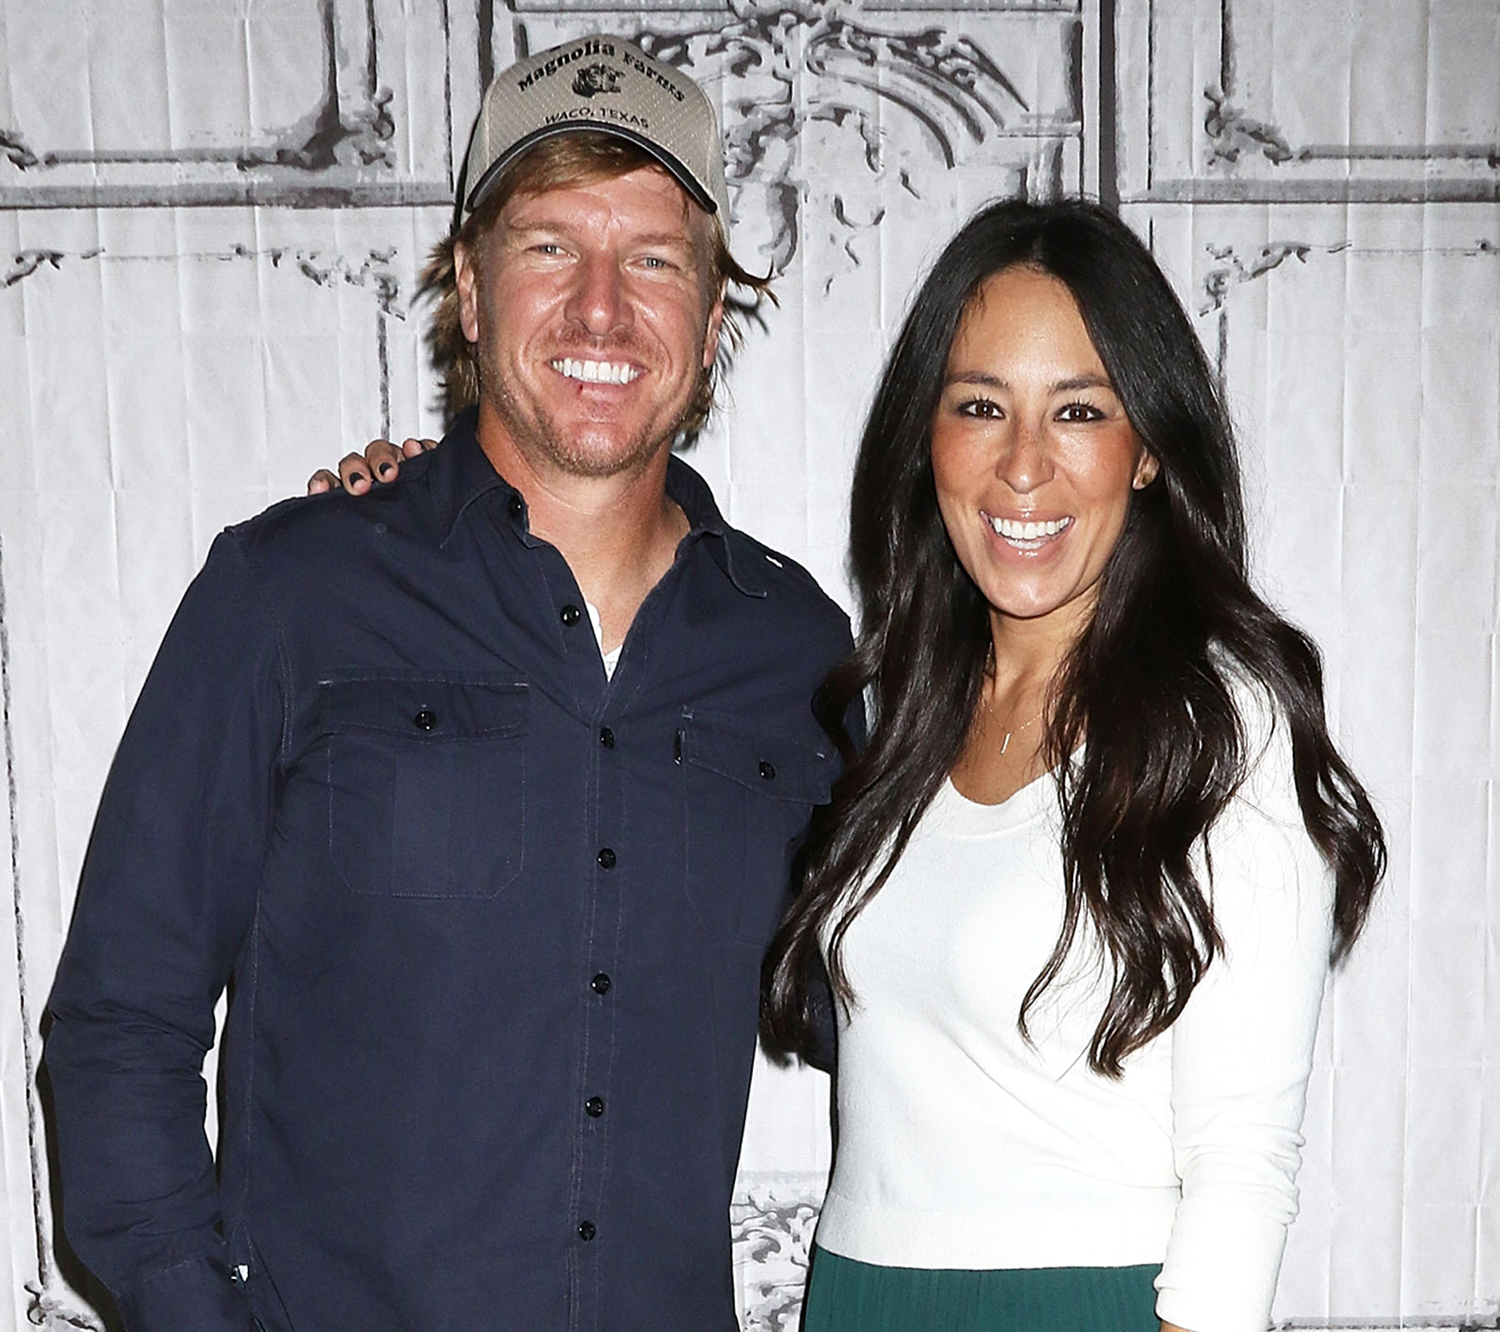 Chip Gaines and Joanna Gaines attend The Build Series to discuss